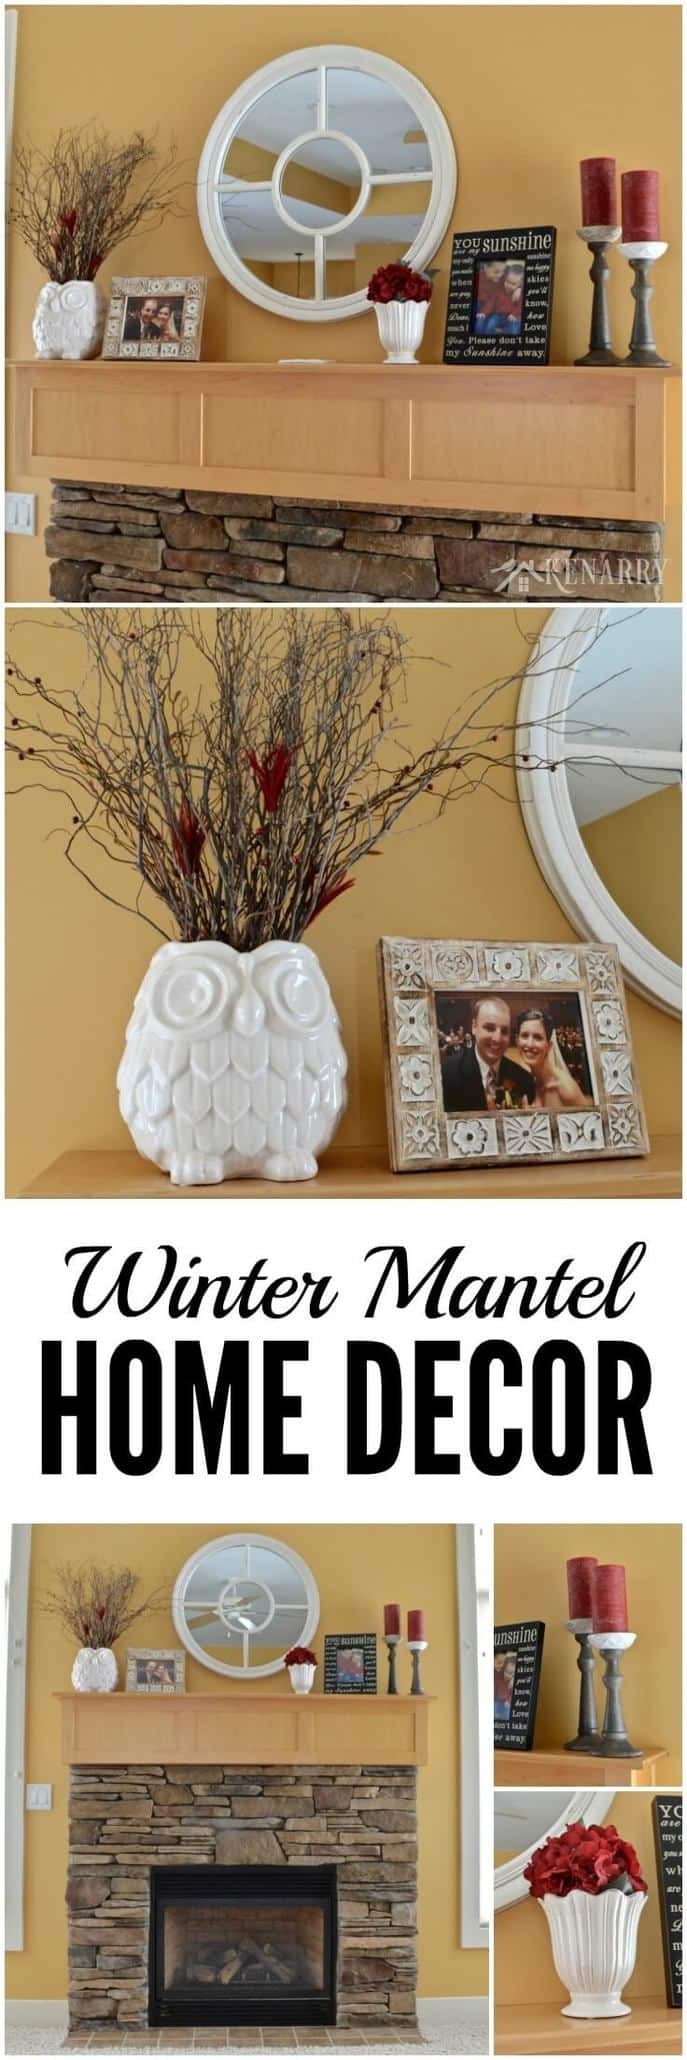 Love these winter mantel decor ideas to update a fireplace for winter with white and red home accents!